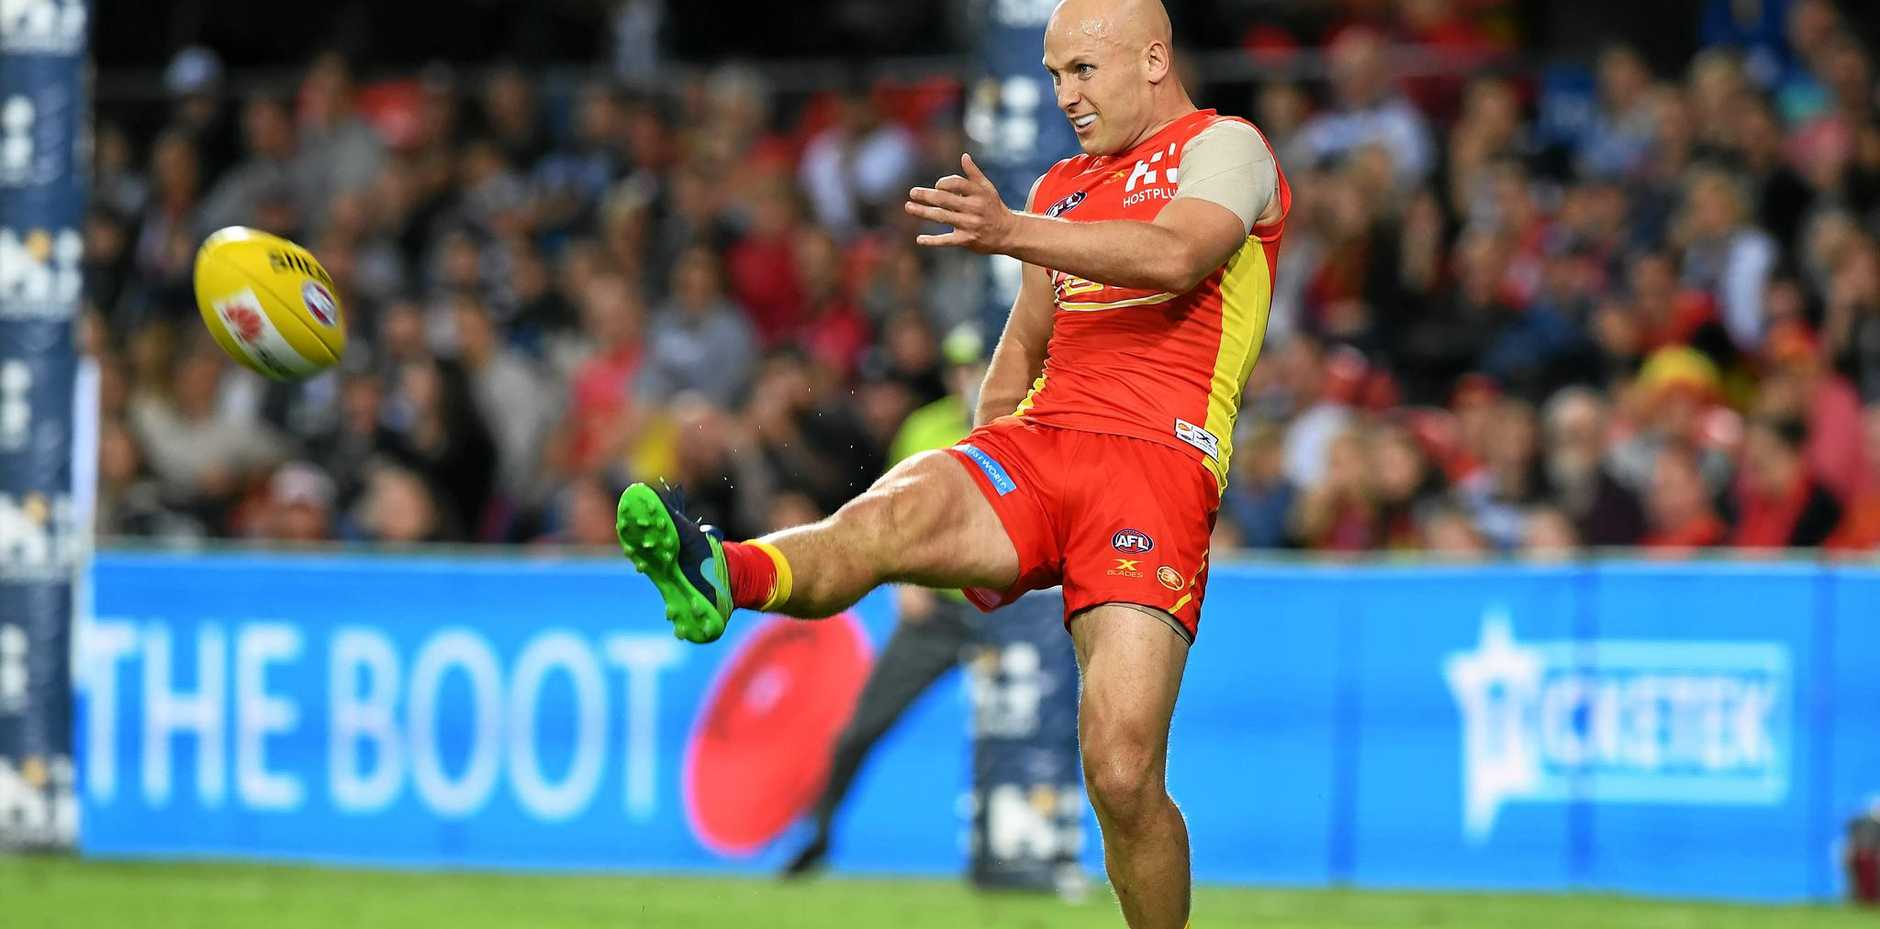 Gary Ablett will be part of the Suns team to play in China next week.